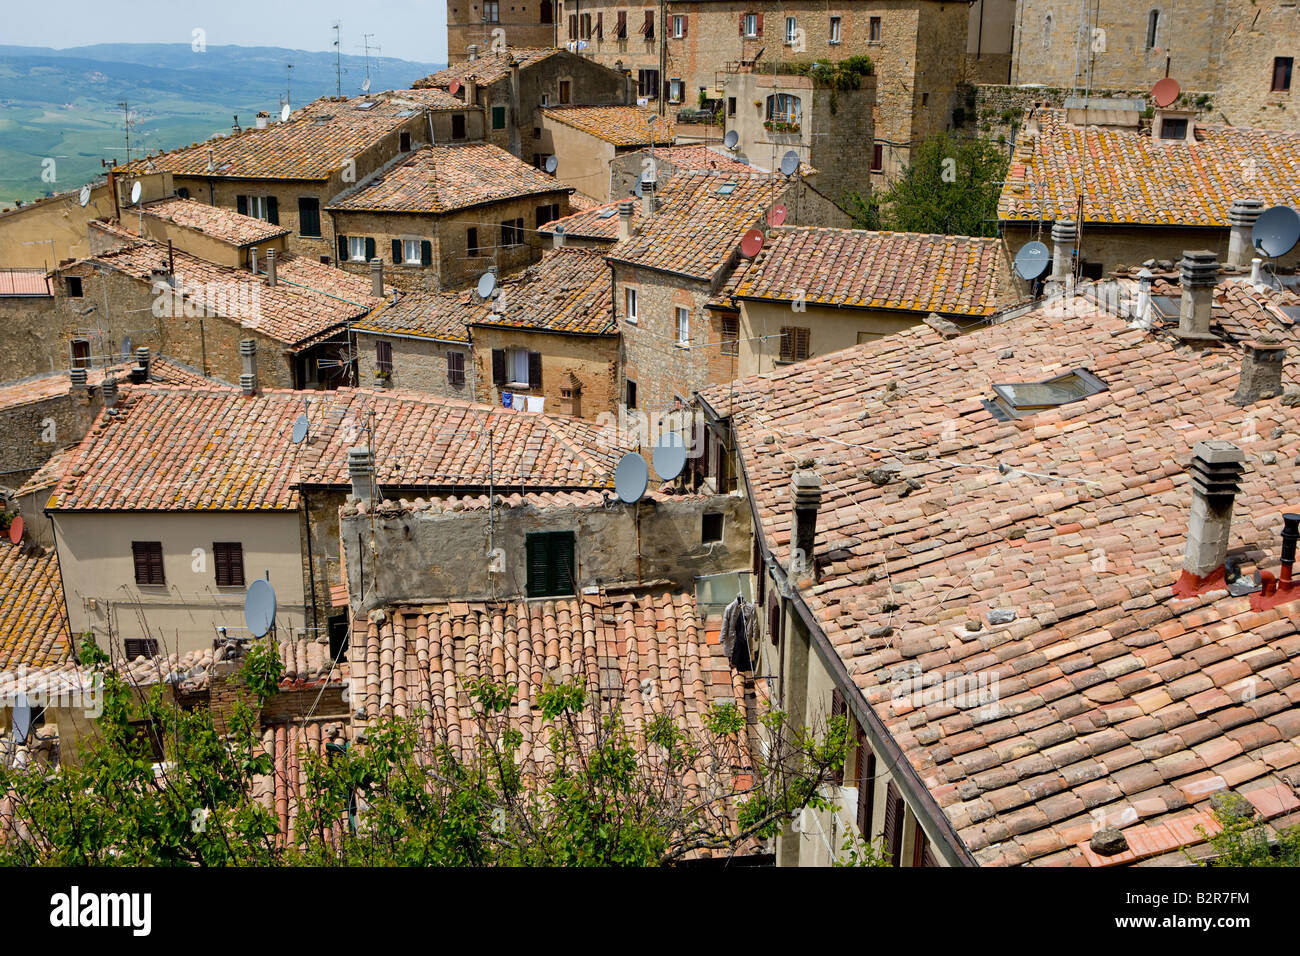 Roofs of Volterra - Stock Image